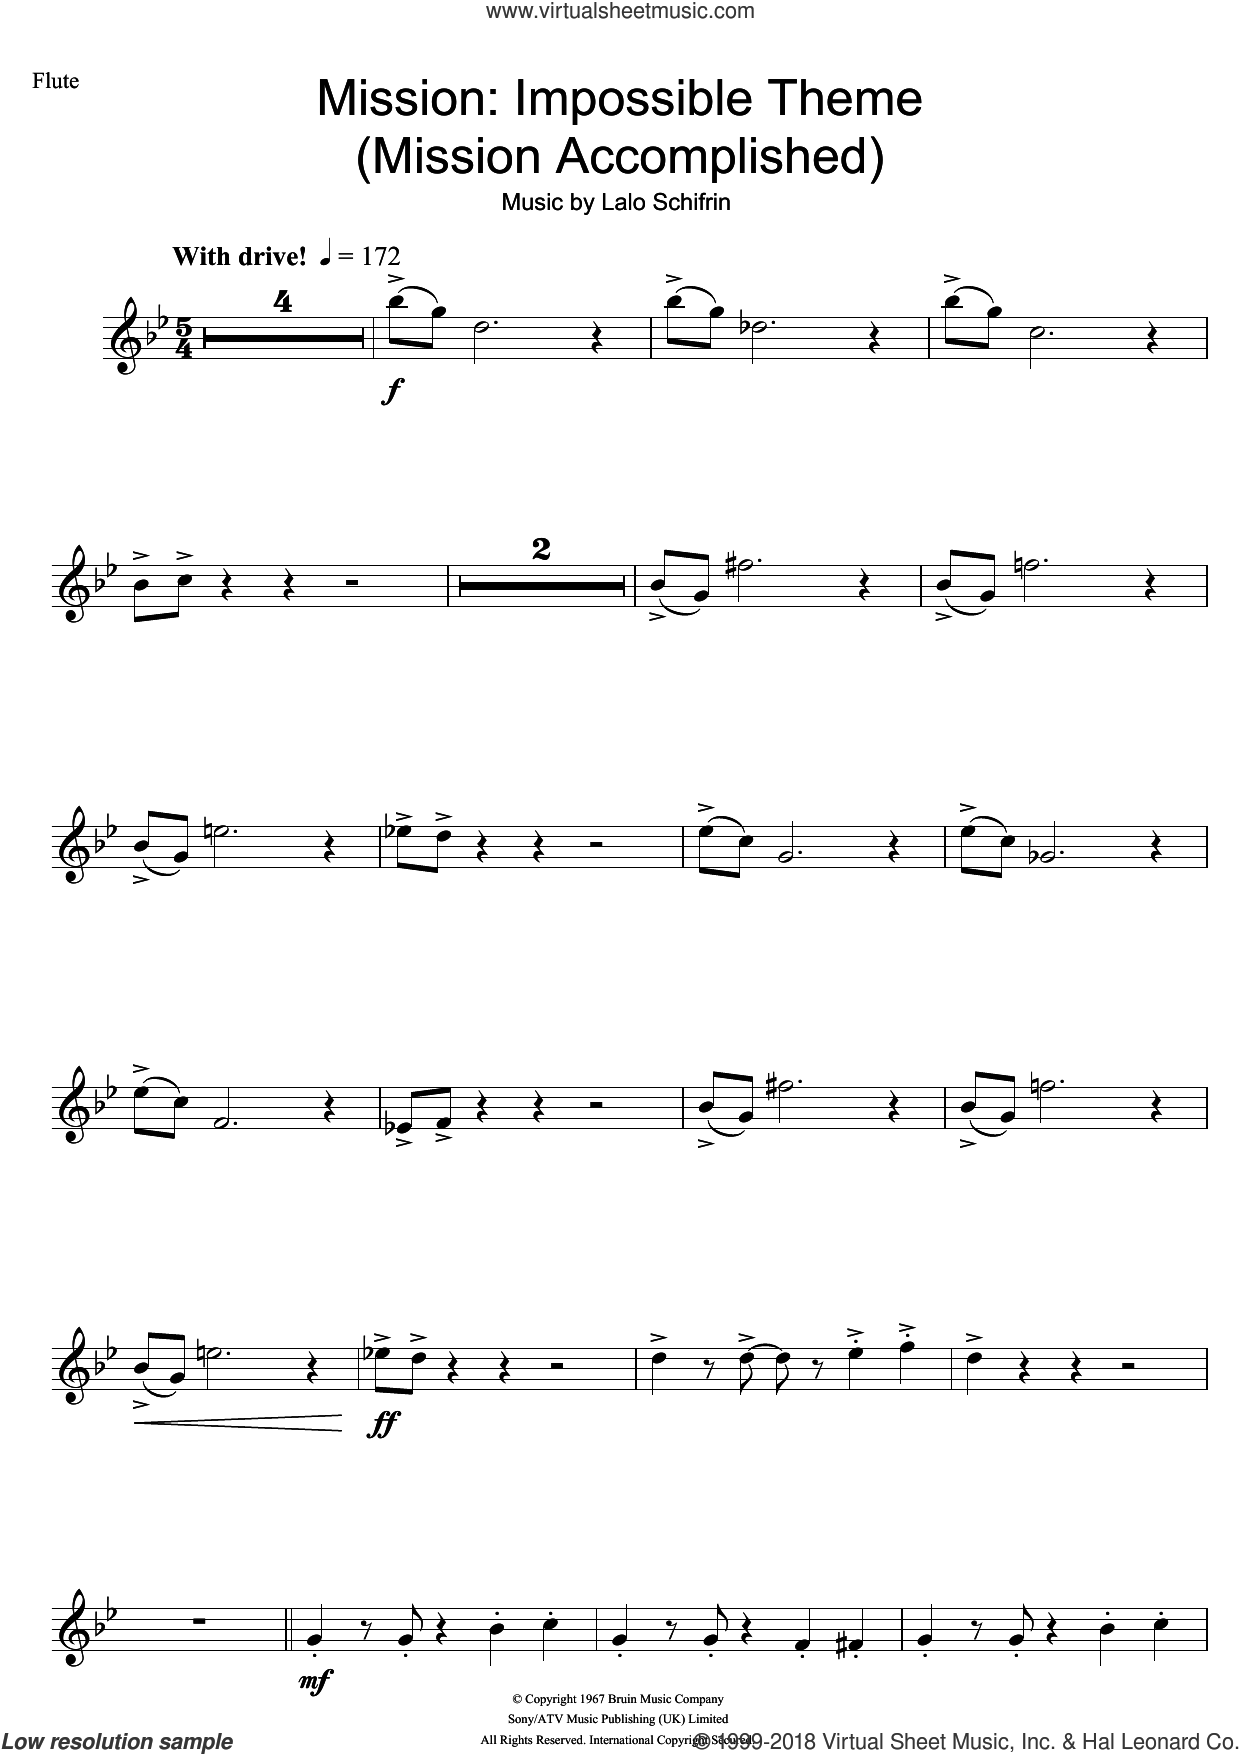 Mission: Impossible Theme (Mission Accomplished) sheet music for flute solo by Lalo Schifrin and Fed Milano, intermediate skill level